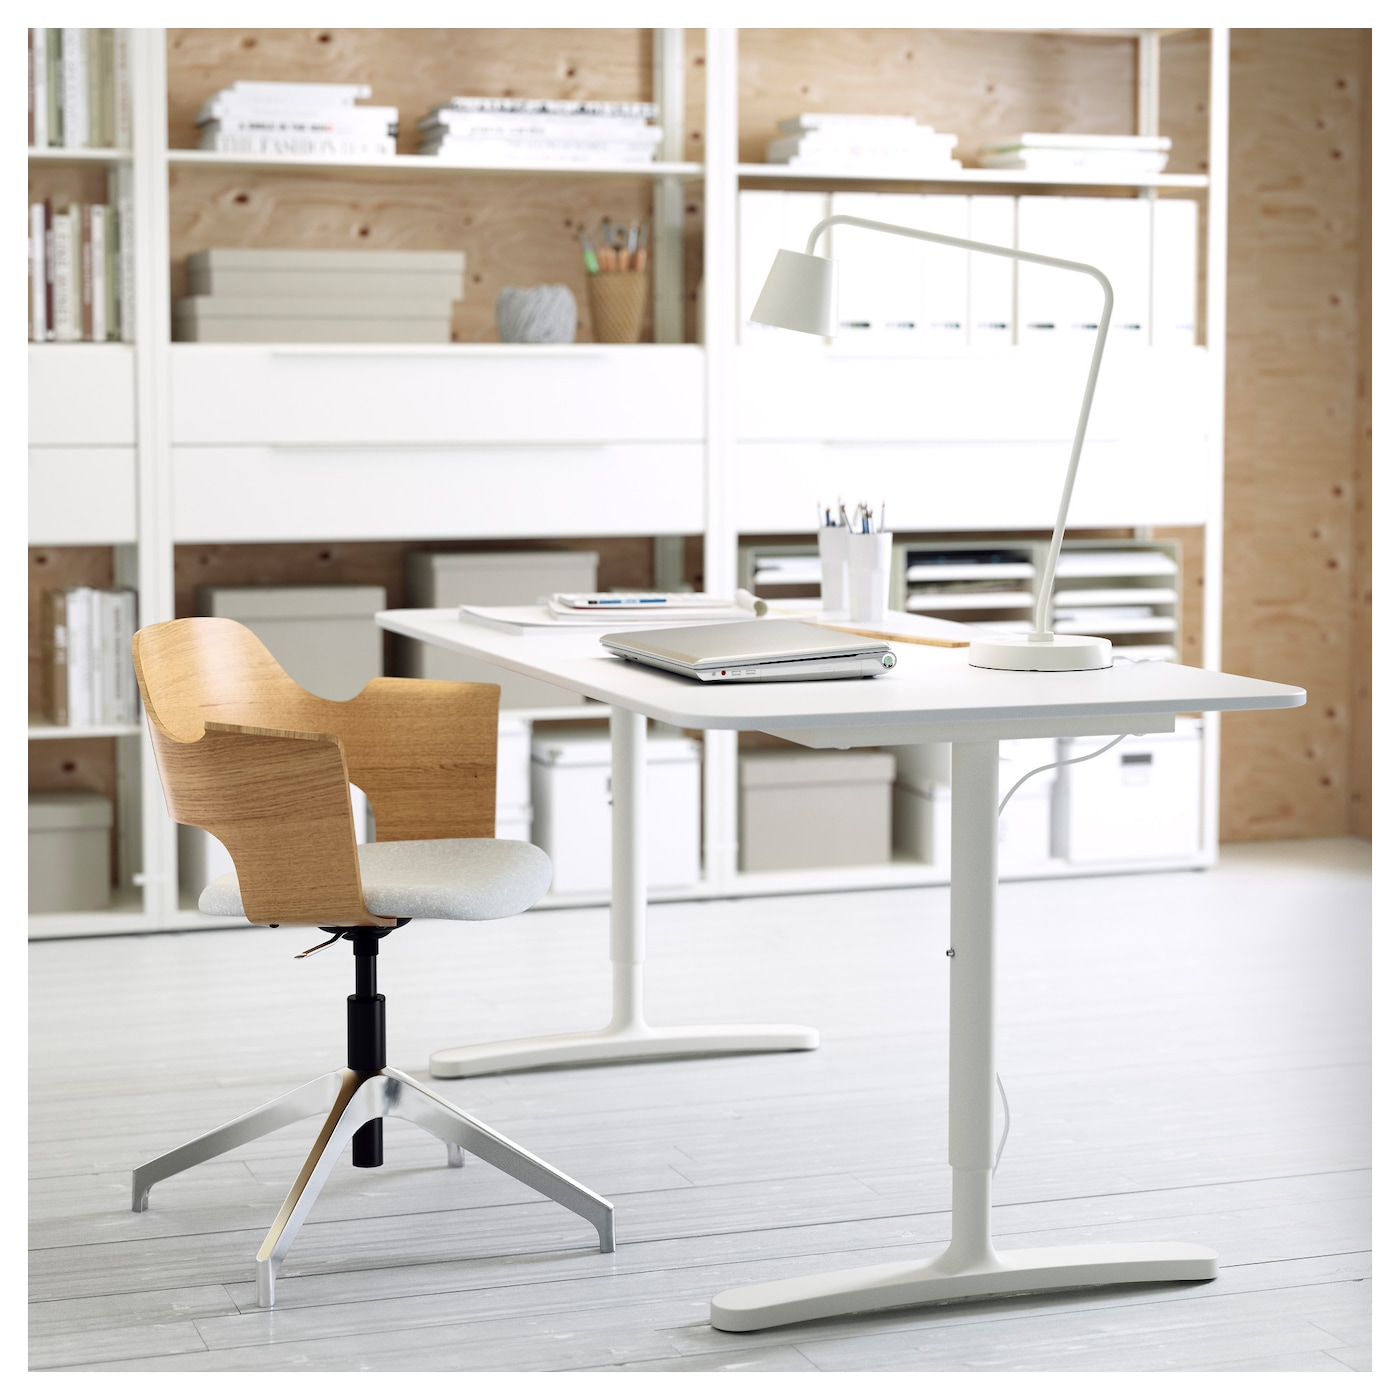 Ikea Bekant Desk 10 Year Guarantee Read About The Terms In Brochure